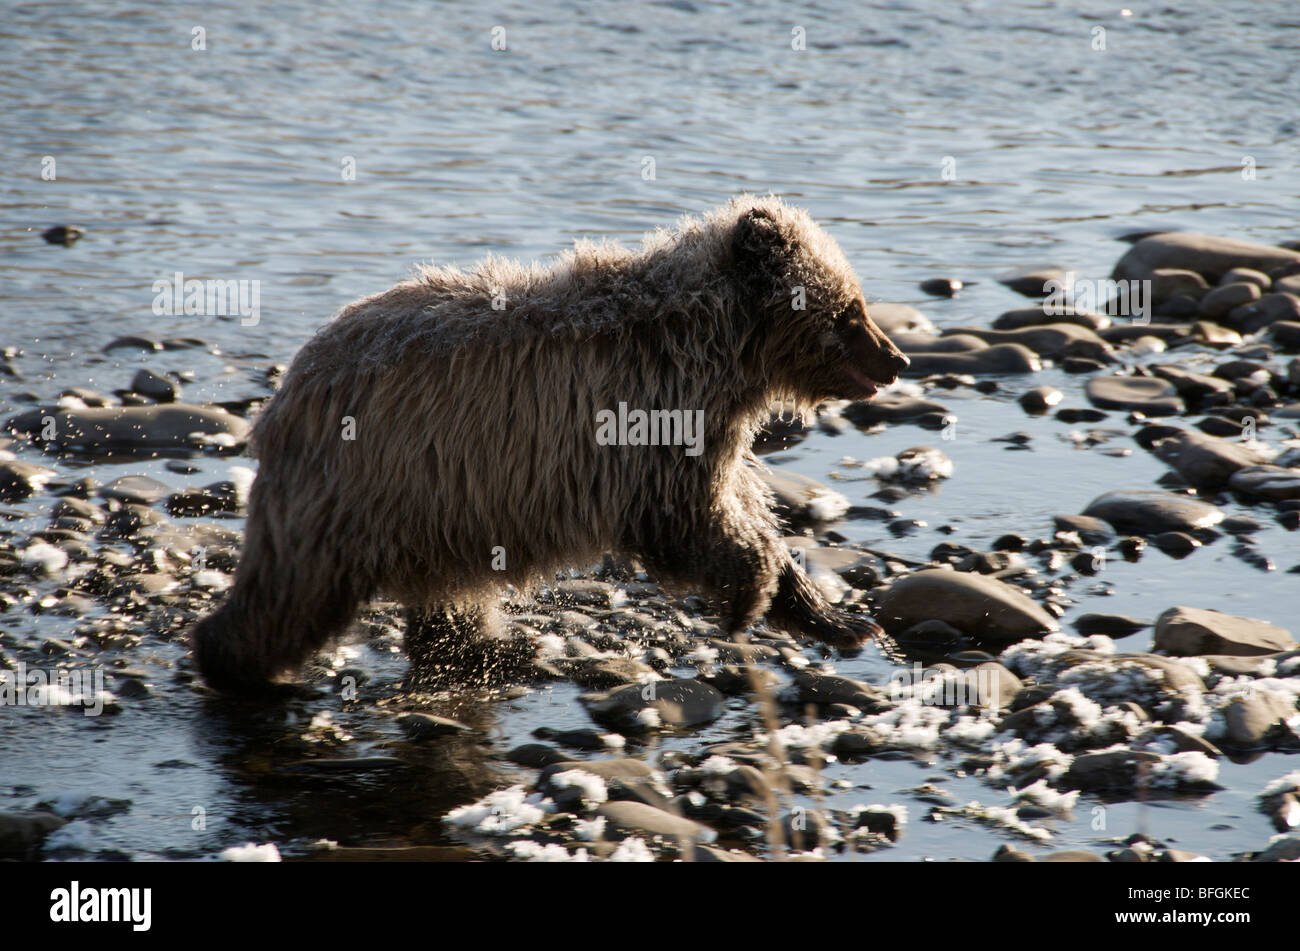 Grizzly Bear 1st Year Cub (Ursus arctos). Fishing Branch River, Ni'iinlii Njik Ecological Reserve, Yukon Territory, - Stock Image